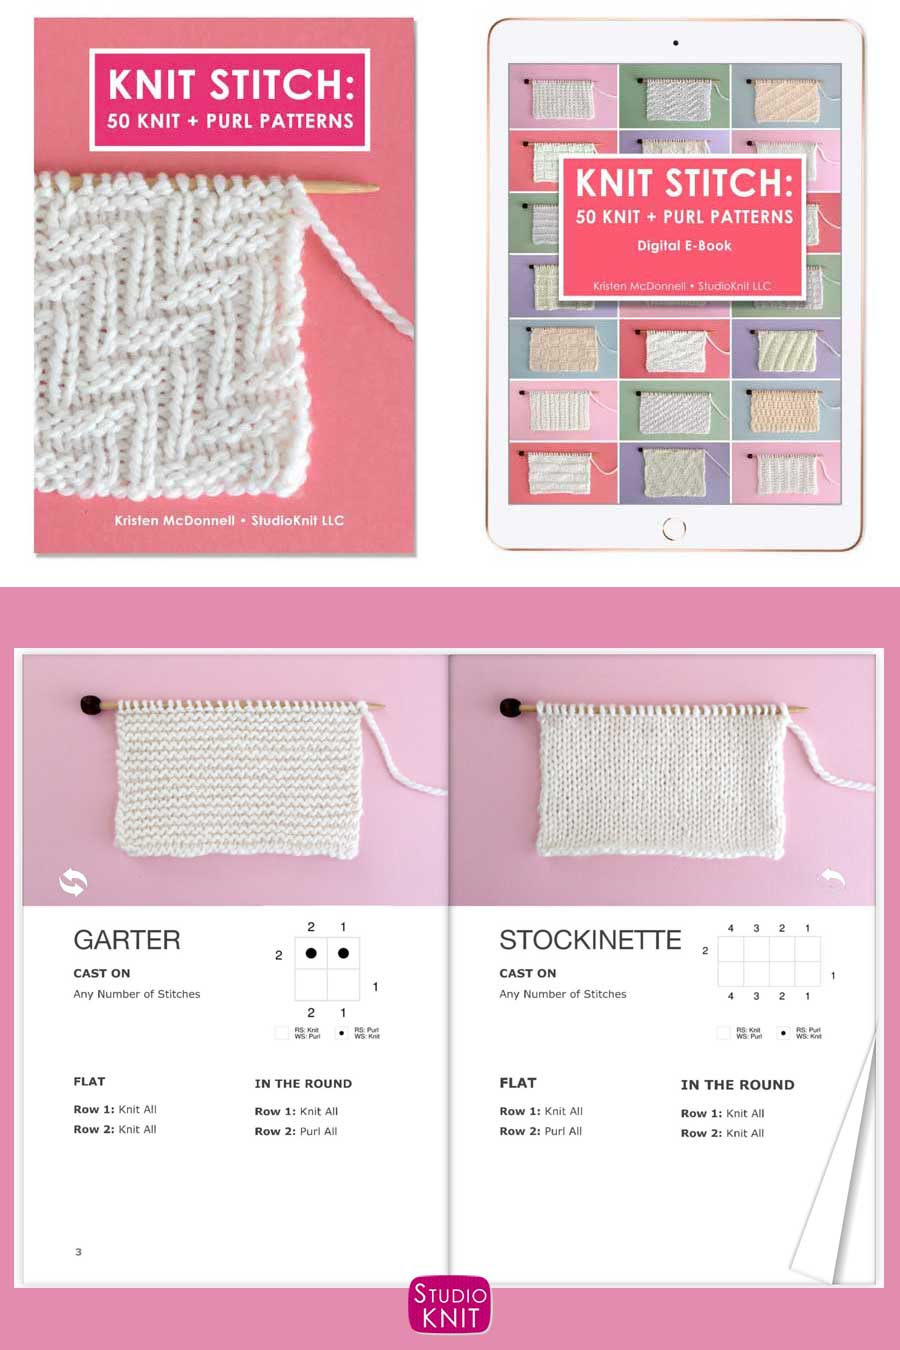 Knit Stitch Pattern Book with Garter and Stockinette Stitch Patterns by Studio Knit